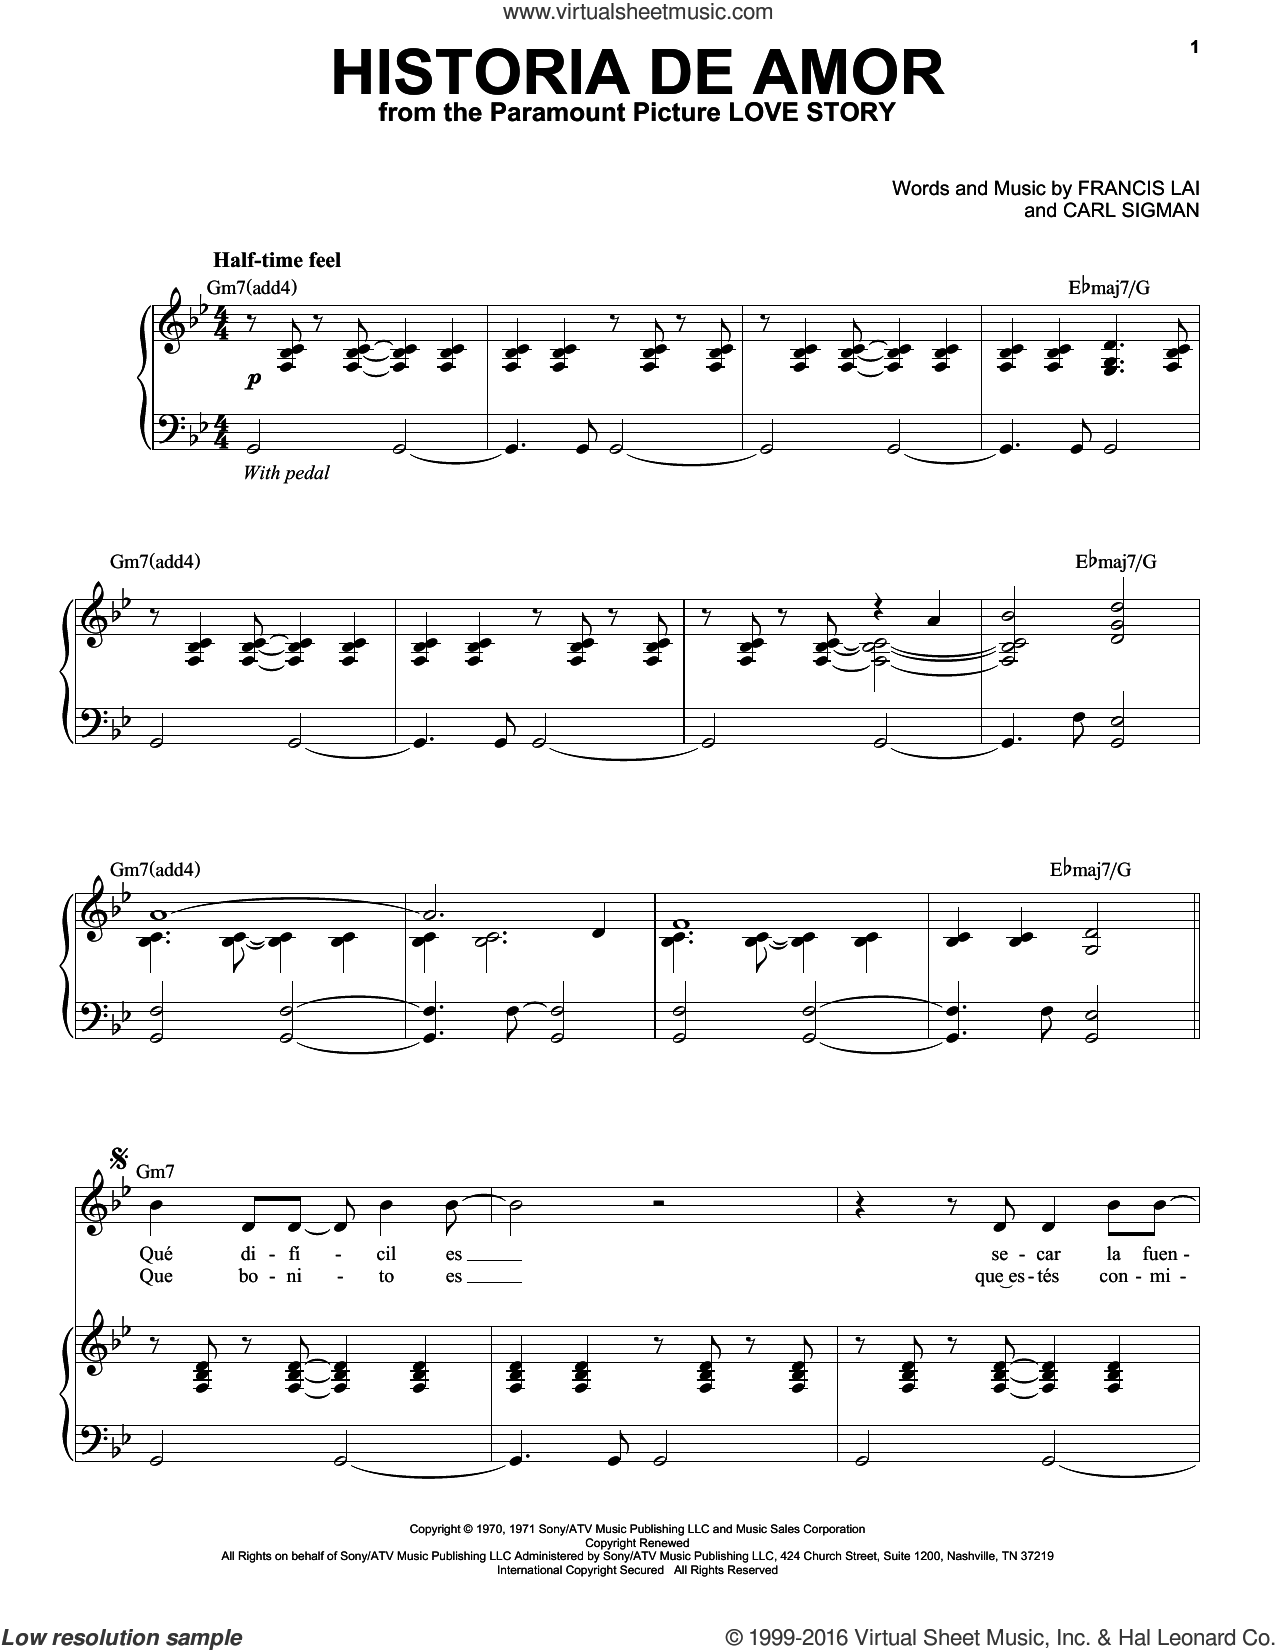 Historia De Amor sheet music for voice and piano by Carl Sigman